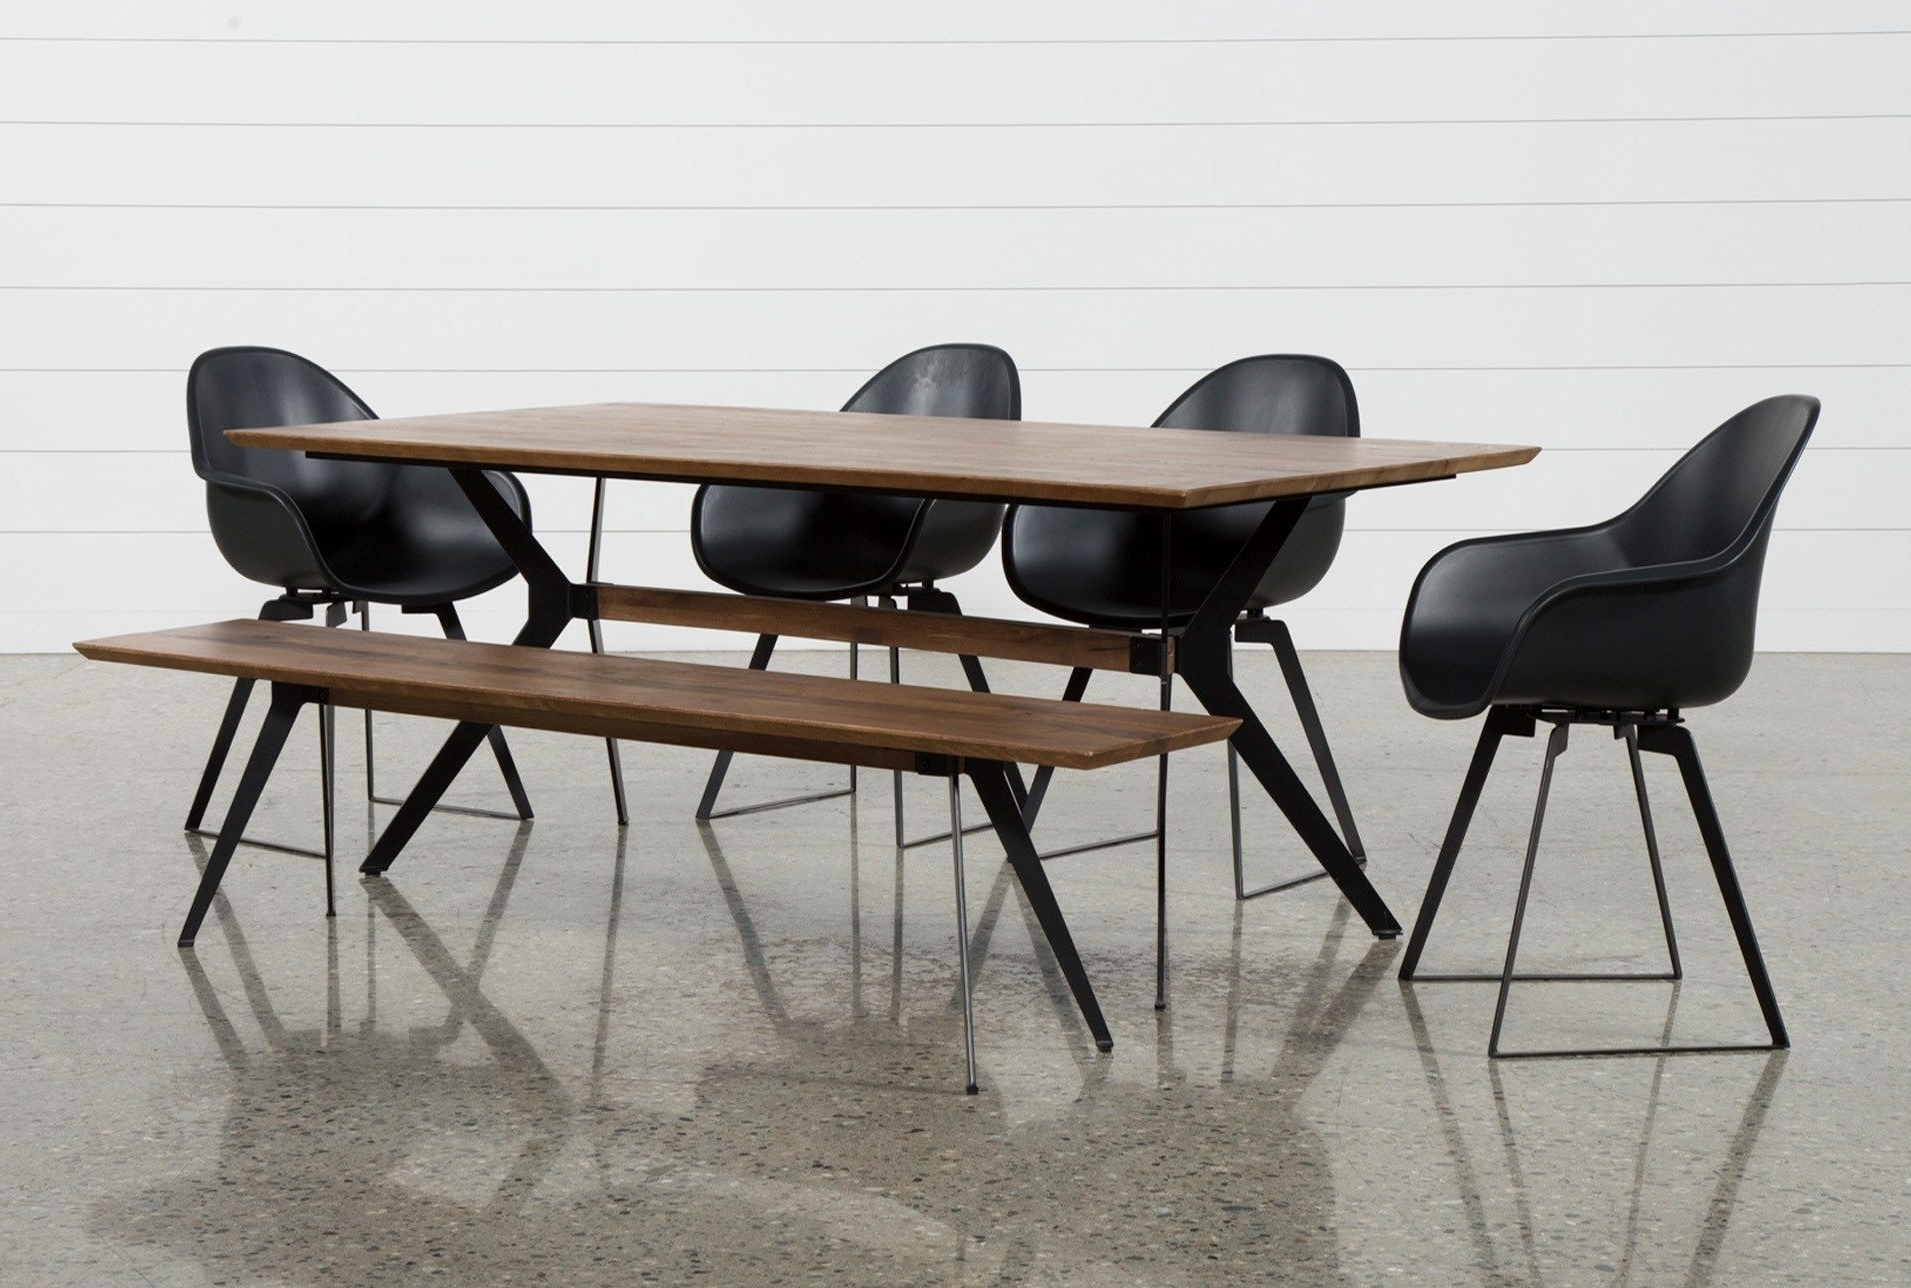 Together, Our Weaver Dining Table, Bench And Alvin Arm Chair Bring Within Latest Weaver Ii Dining Tables (View 5 of 25)